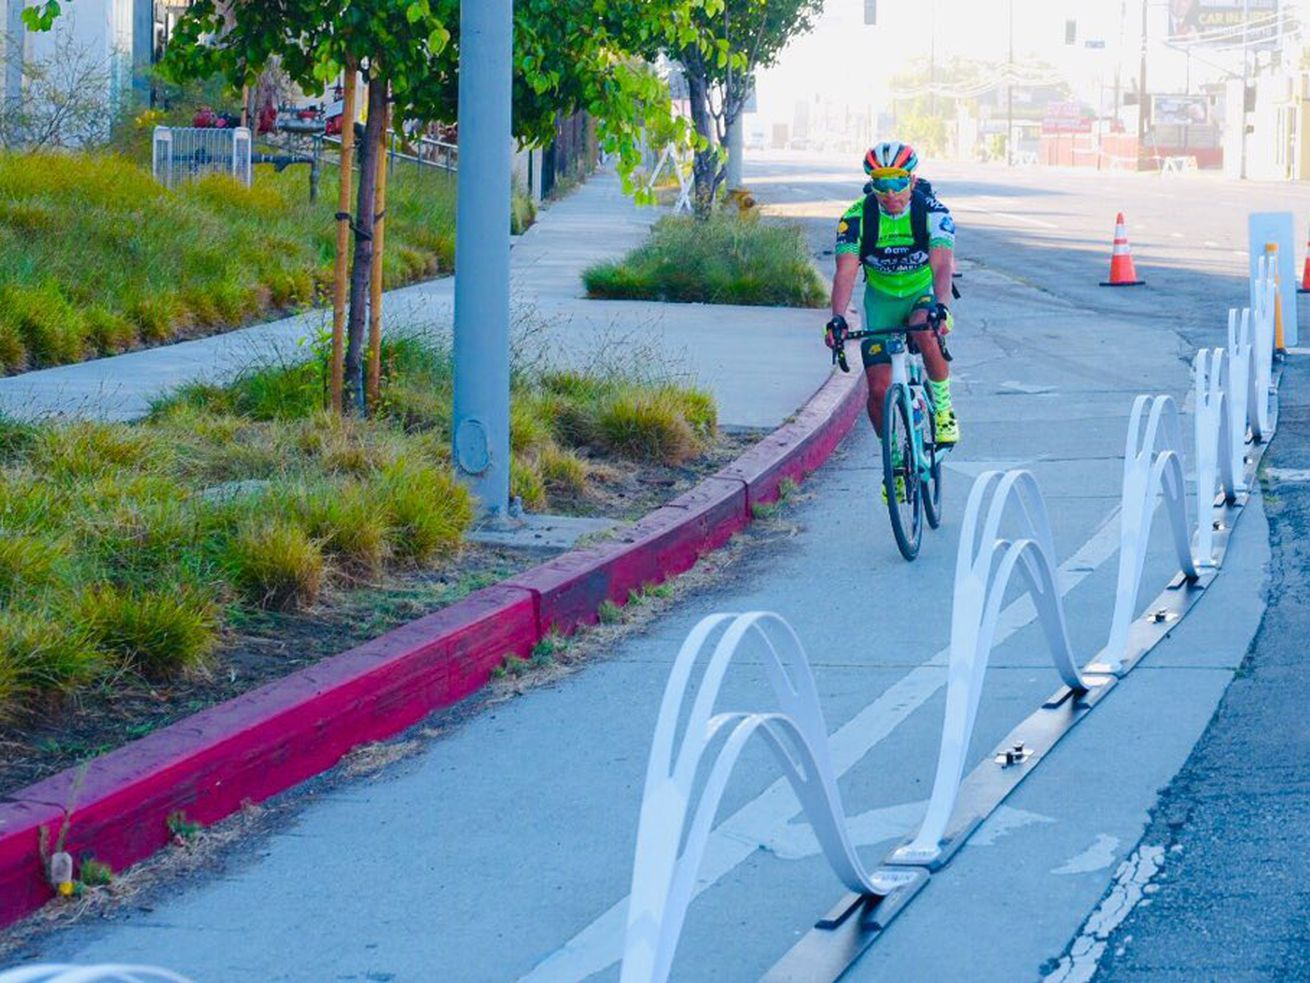 The lane delineator was installed for the CicLAvia event Sunday.